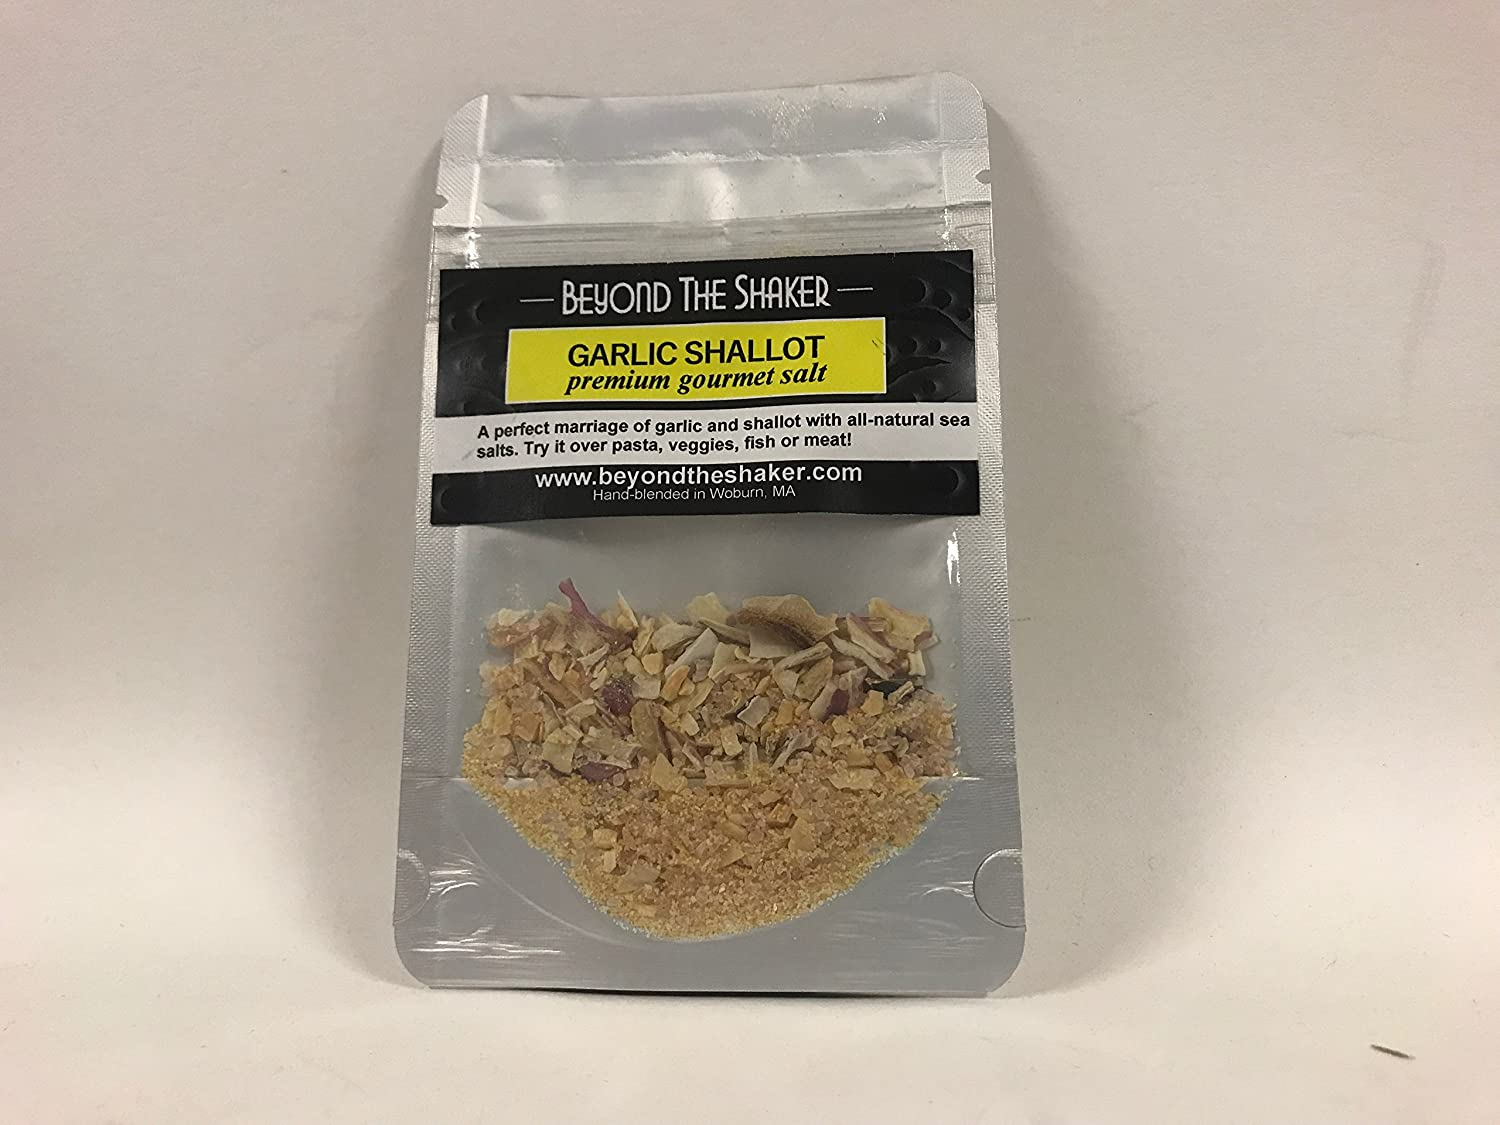 Garlic Shallot Sample